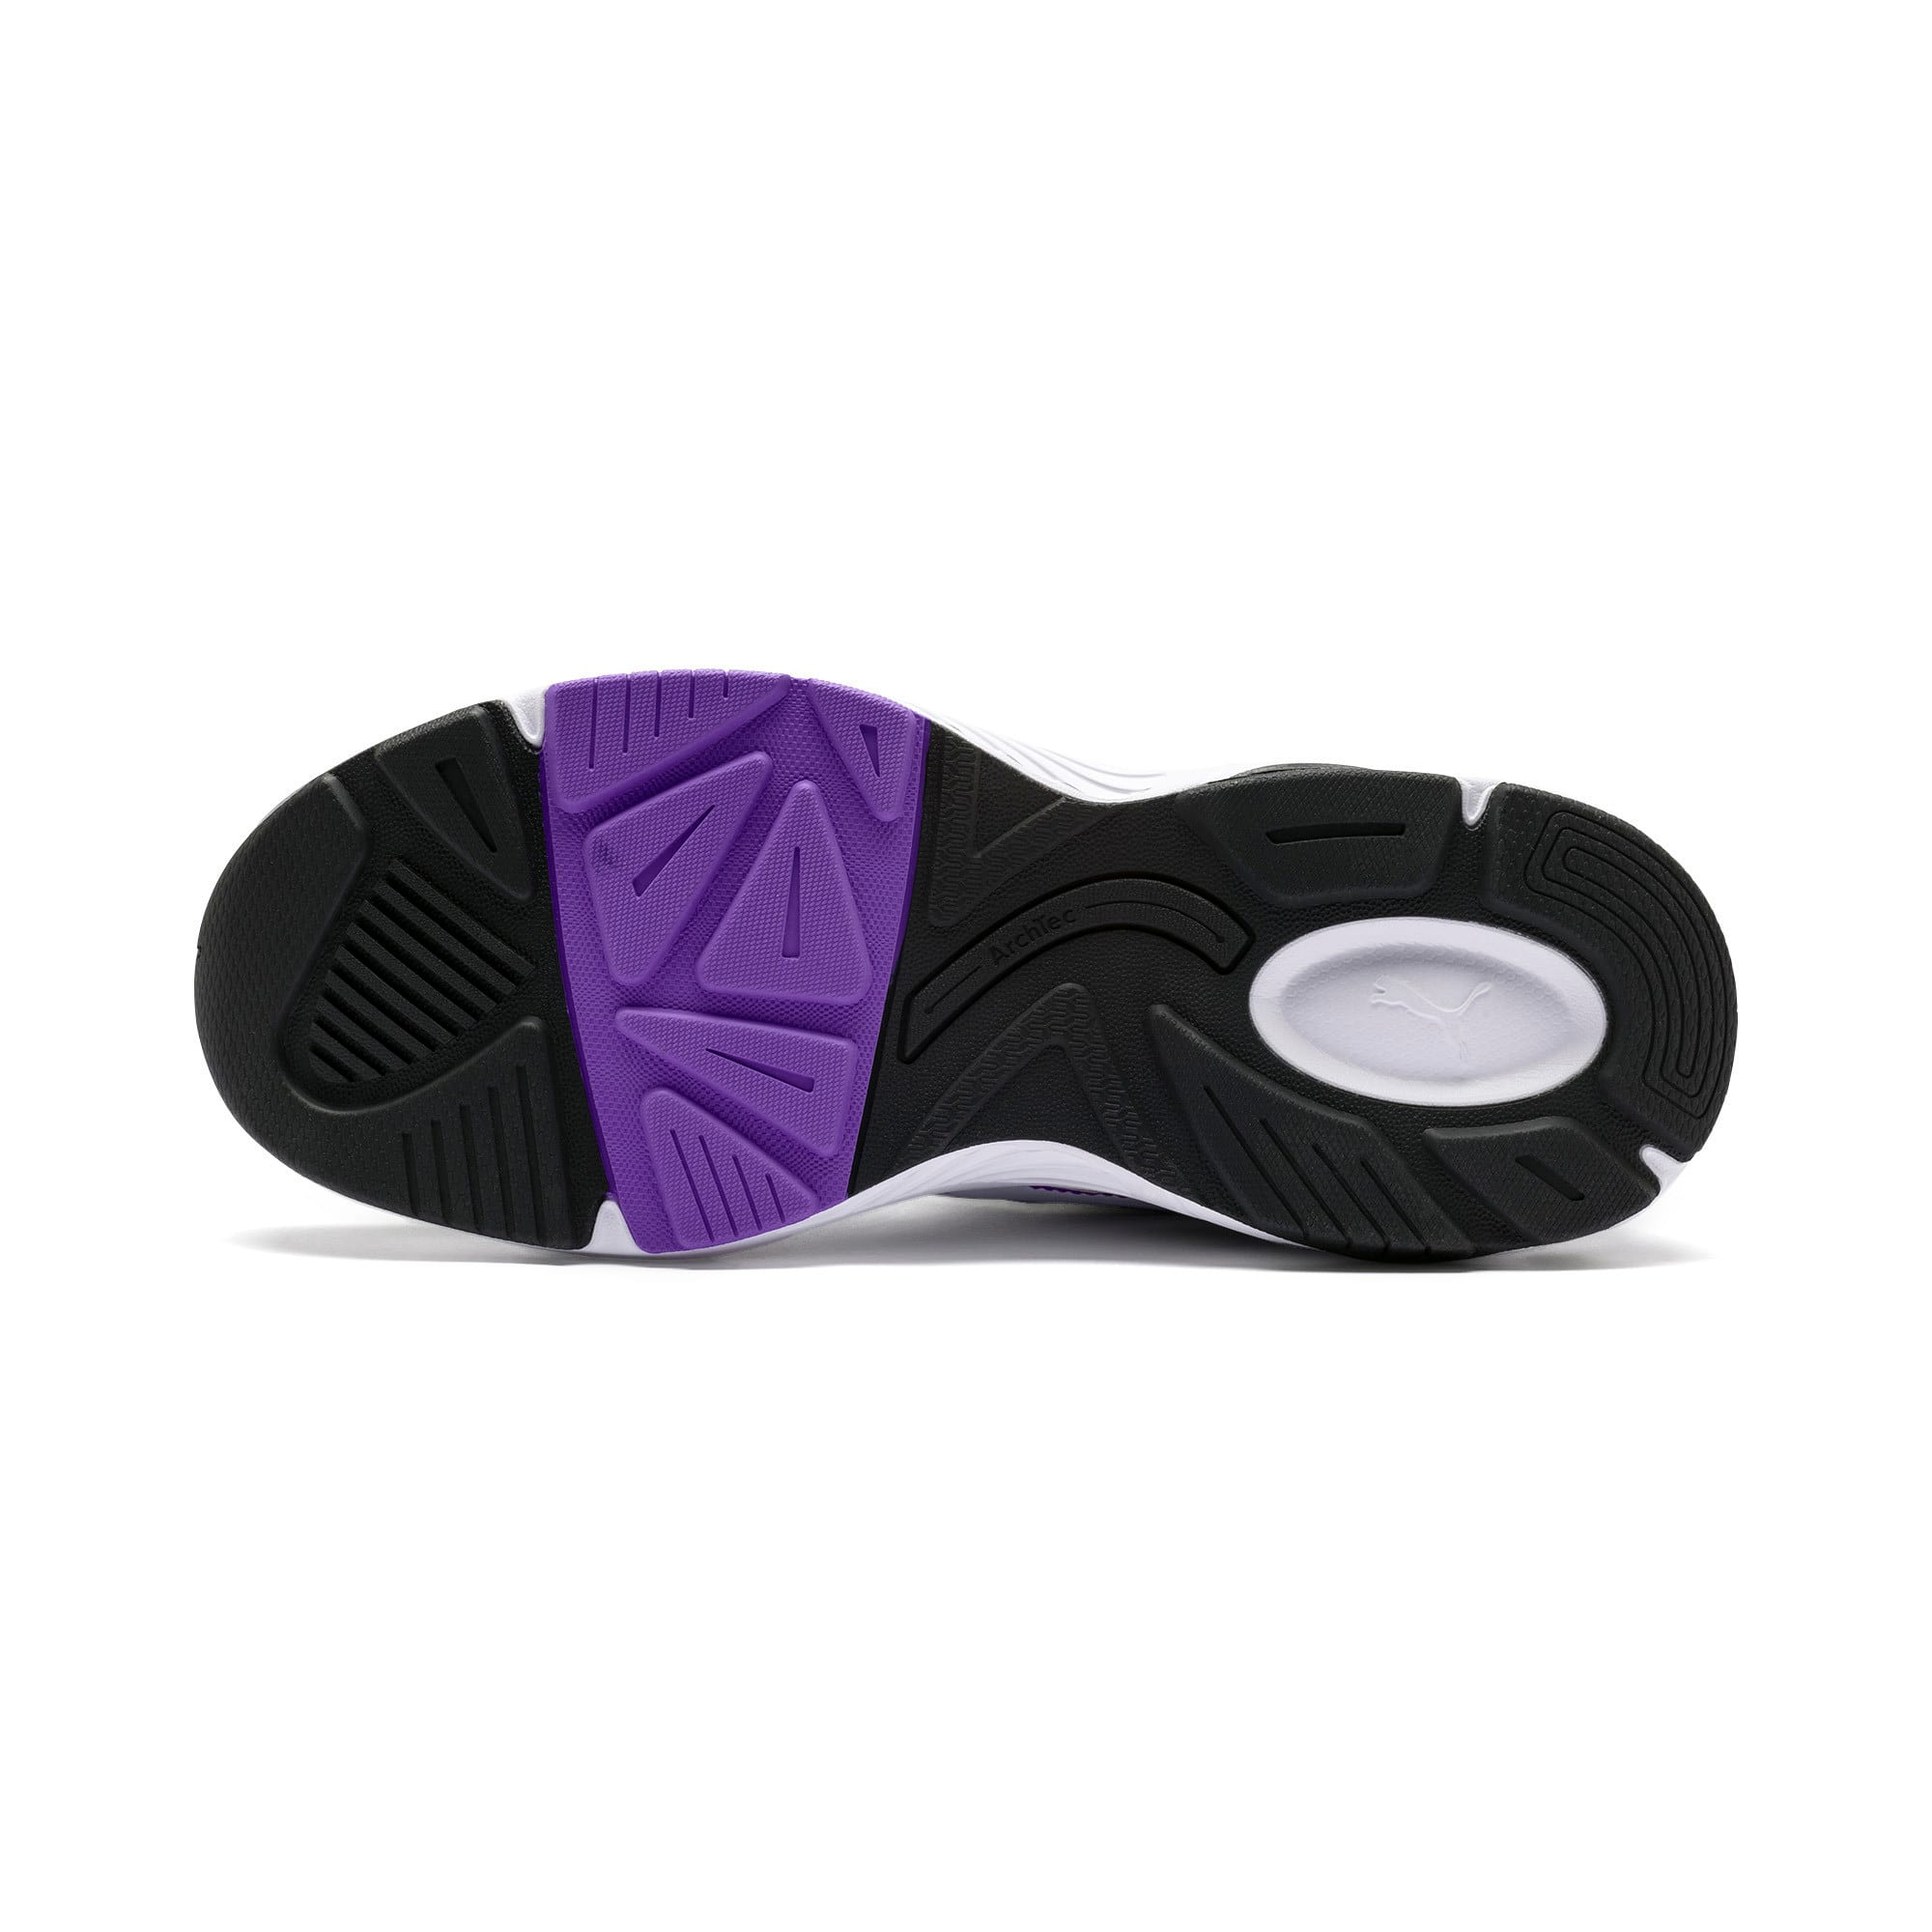 Thumbnail 6 of Axis SUPR Trainers, White-Black-Purple Glimmer, medium-IND